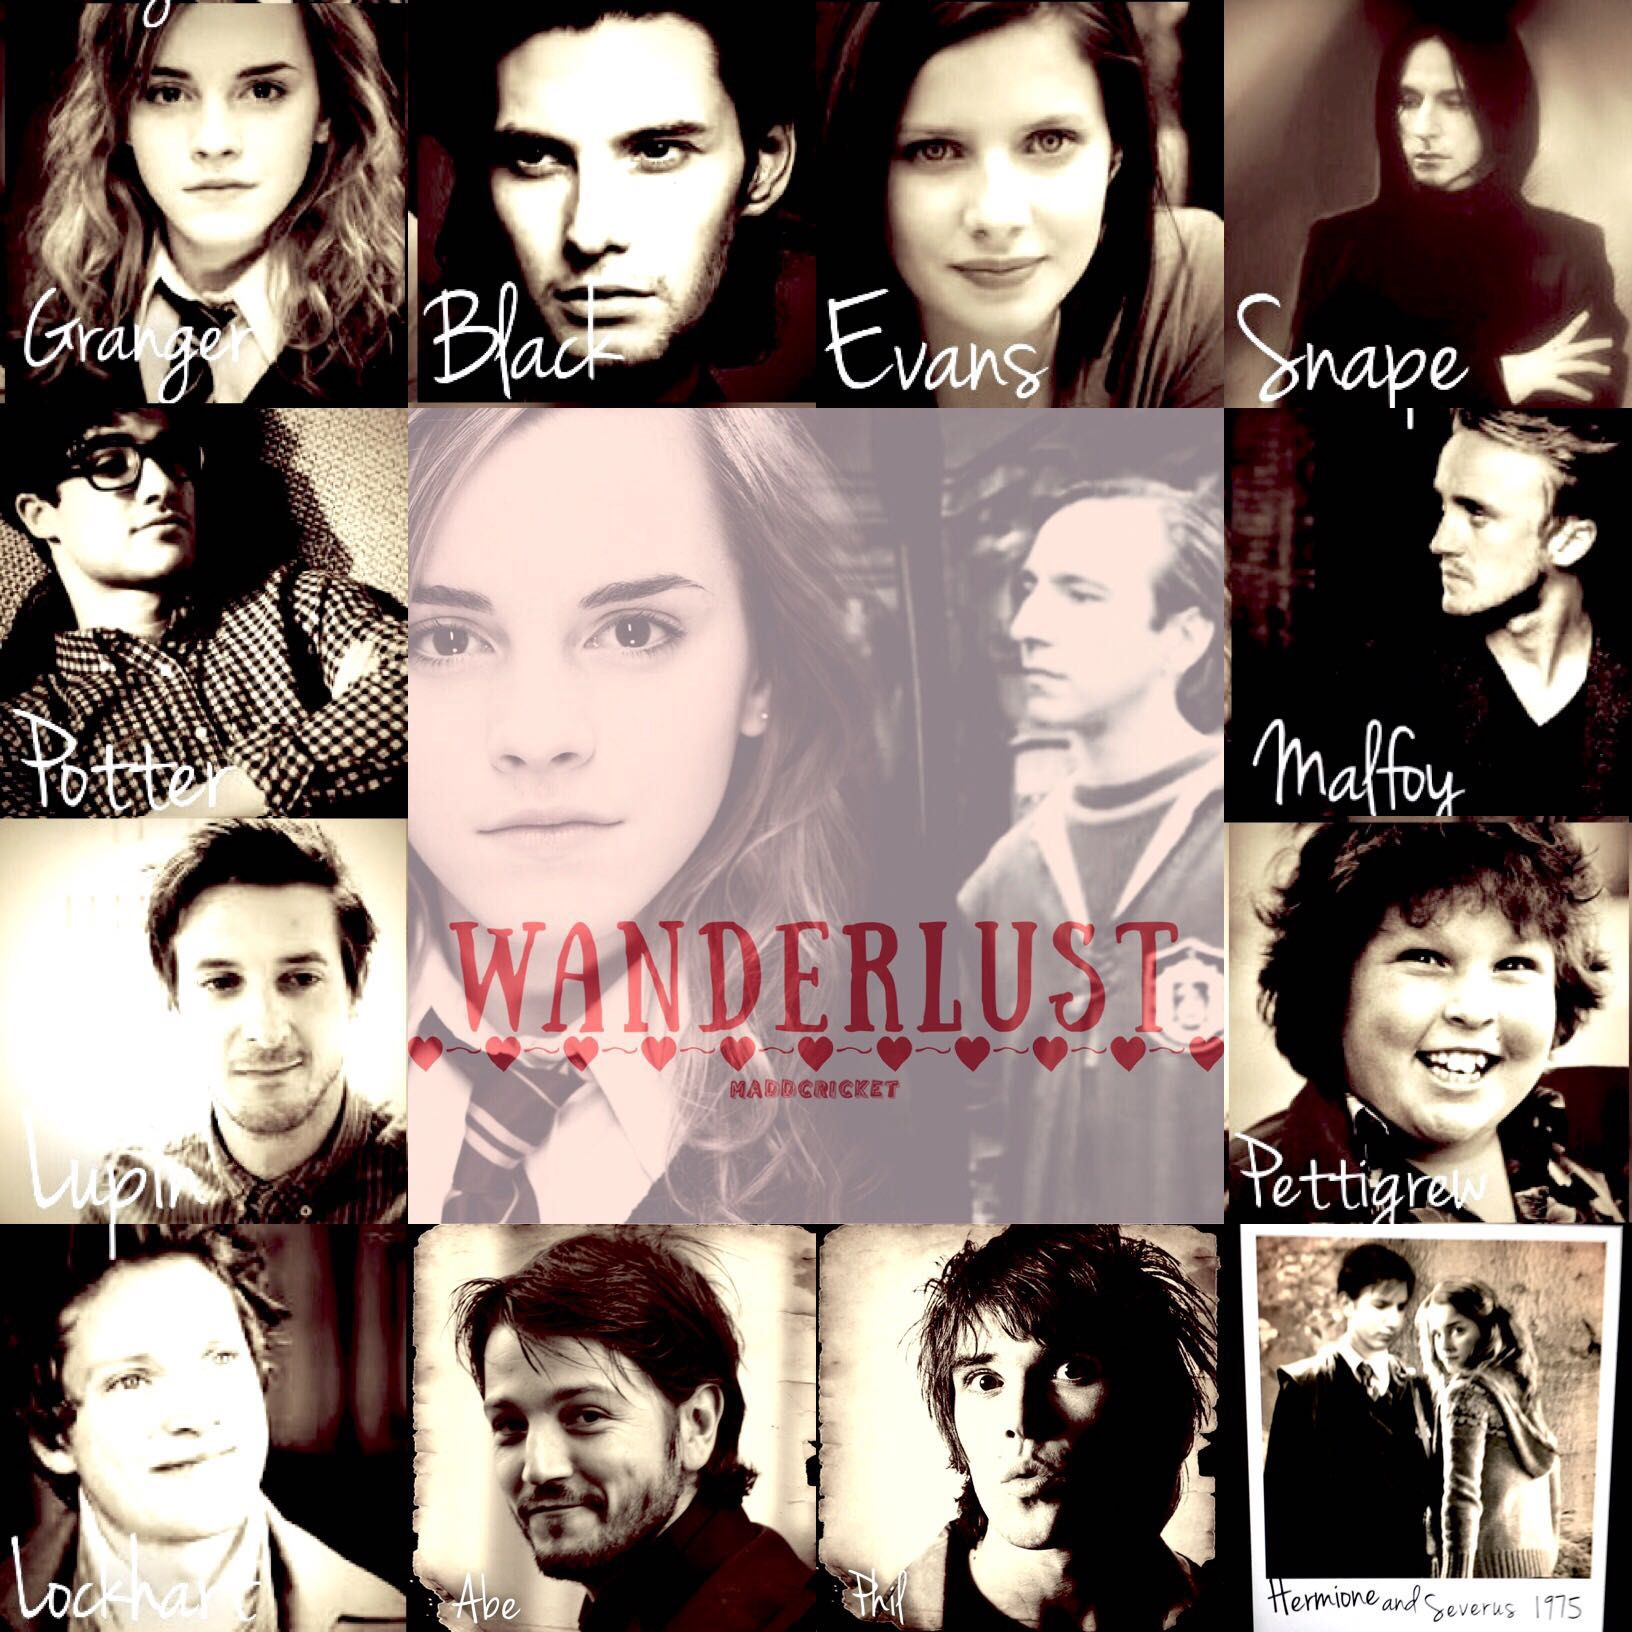 Wanderlust - The Prisoner's Palace - Wattpad